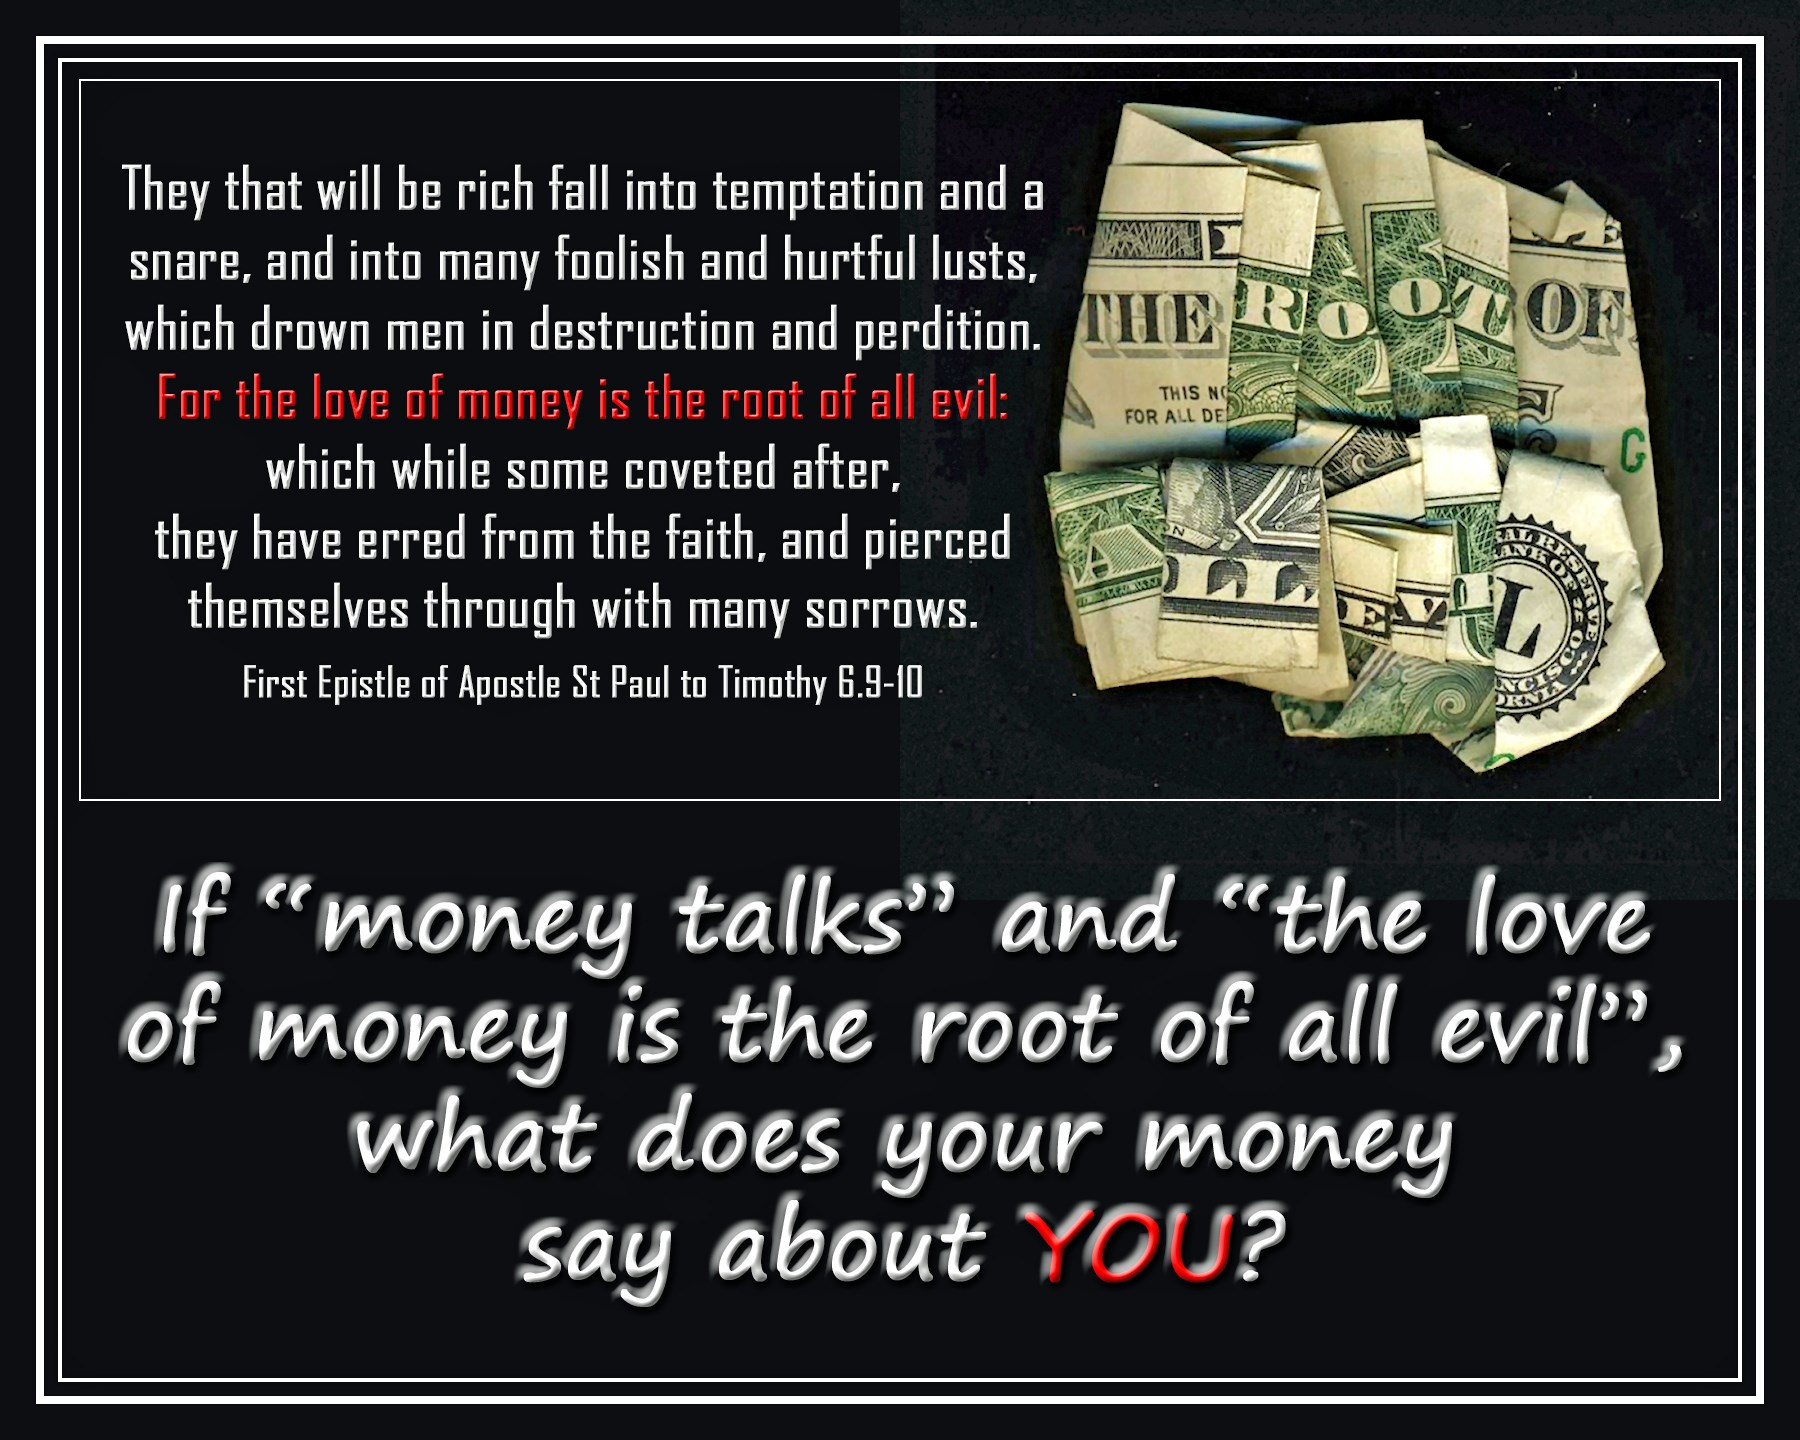 Is Love of Money Really the Root of All Evils?